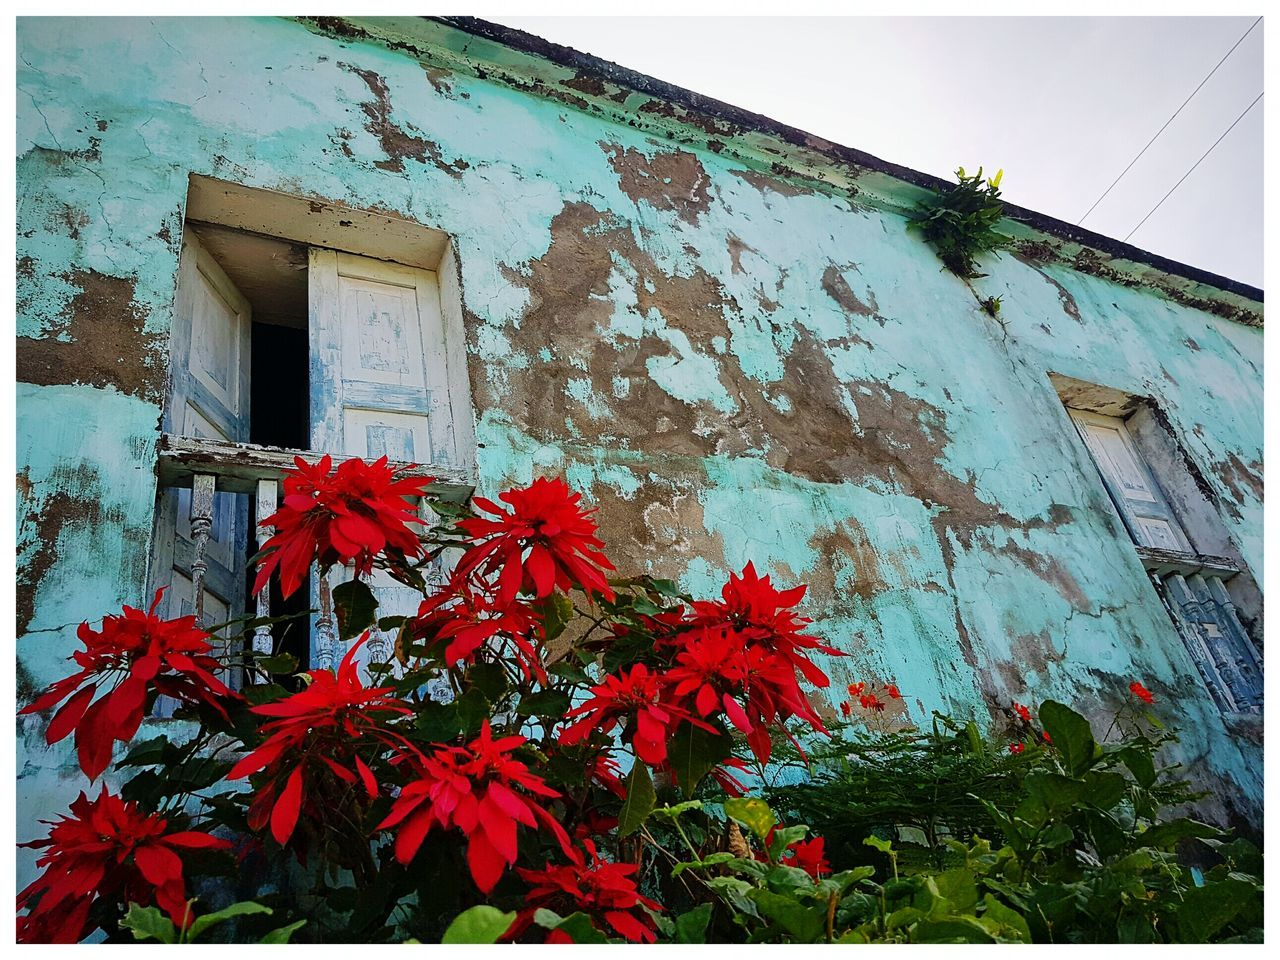 architecture, building exterior, built structure, house, leaf, low angle view, window, growth, day, no people, outdoors, autumn, plant, red, fragility, nature, flower, close-up